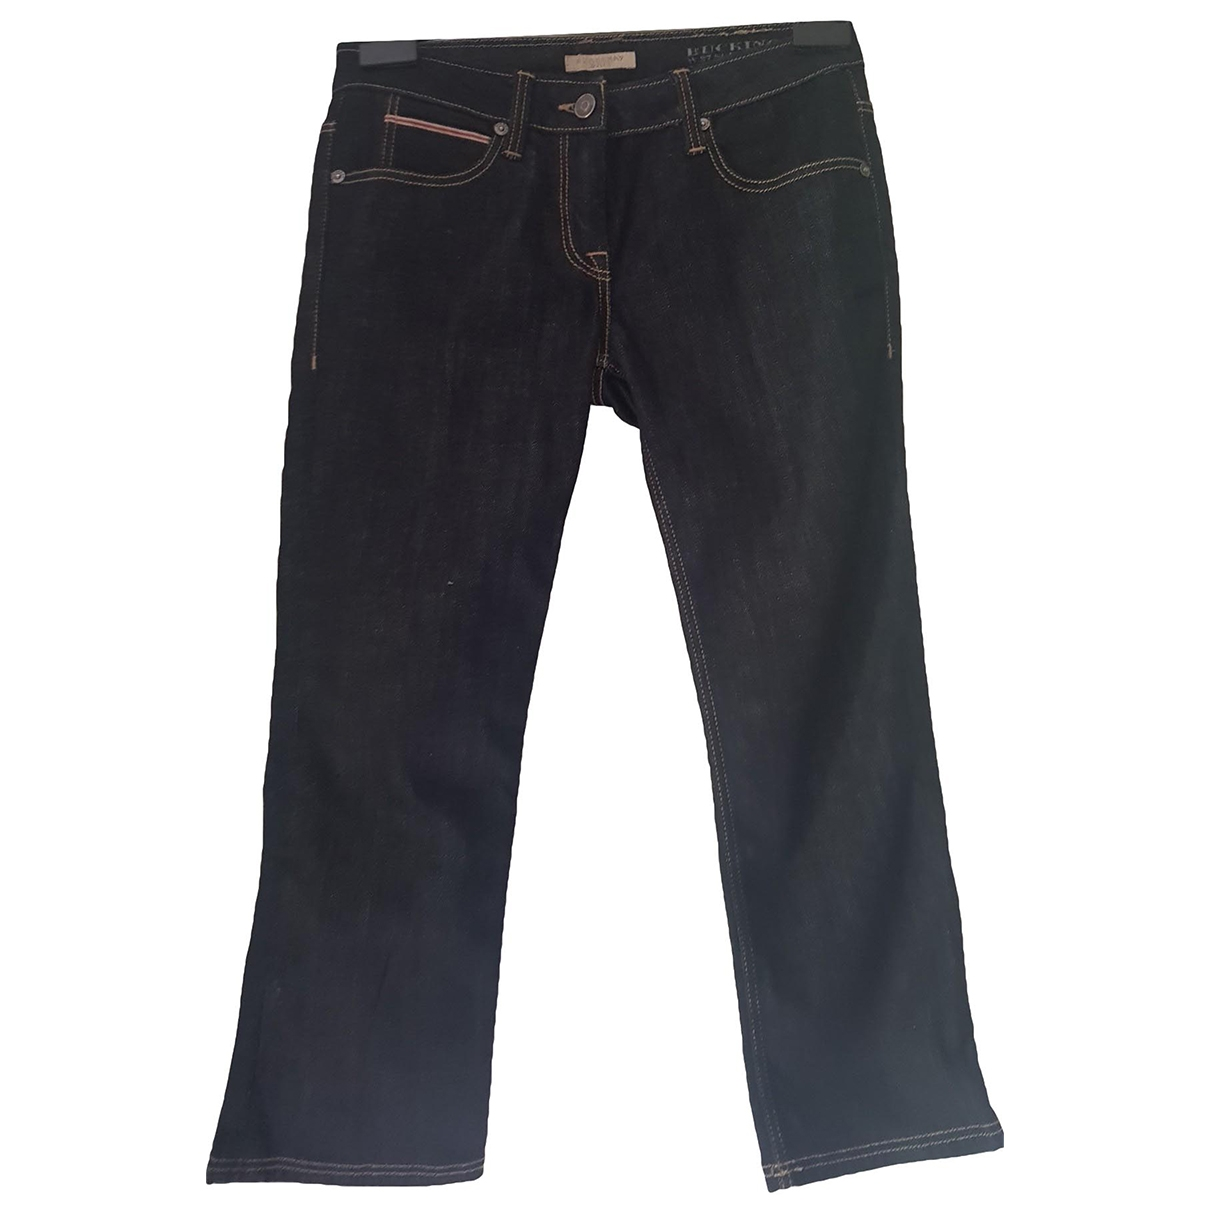 Burberry \N Blue Cotton - elasthane Jeans for Women 27 US